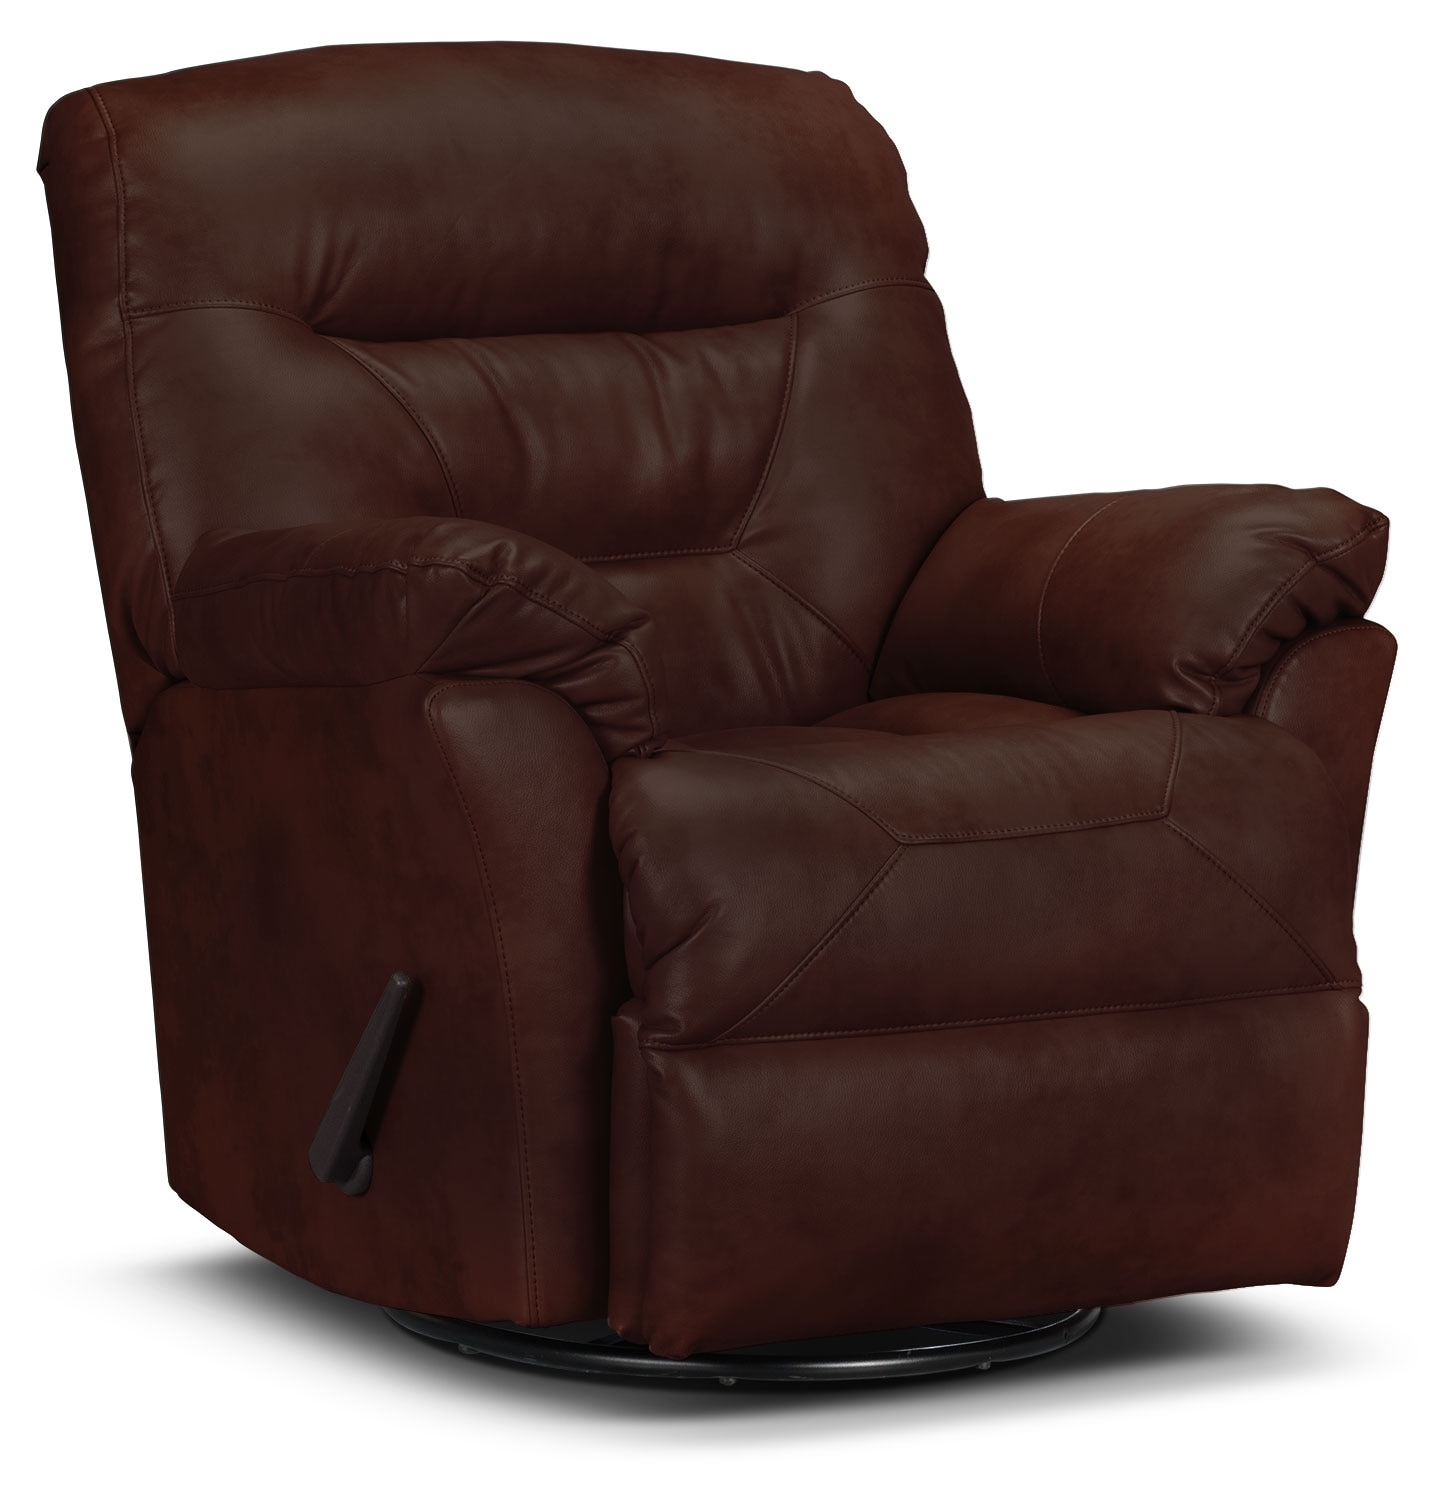 Designed2b Recliner 4579 Genuine Leather Swivel Glider